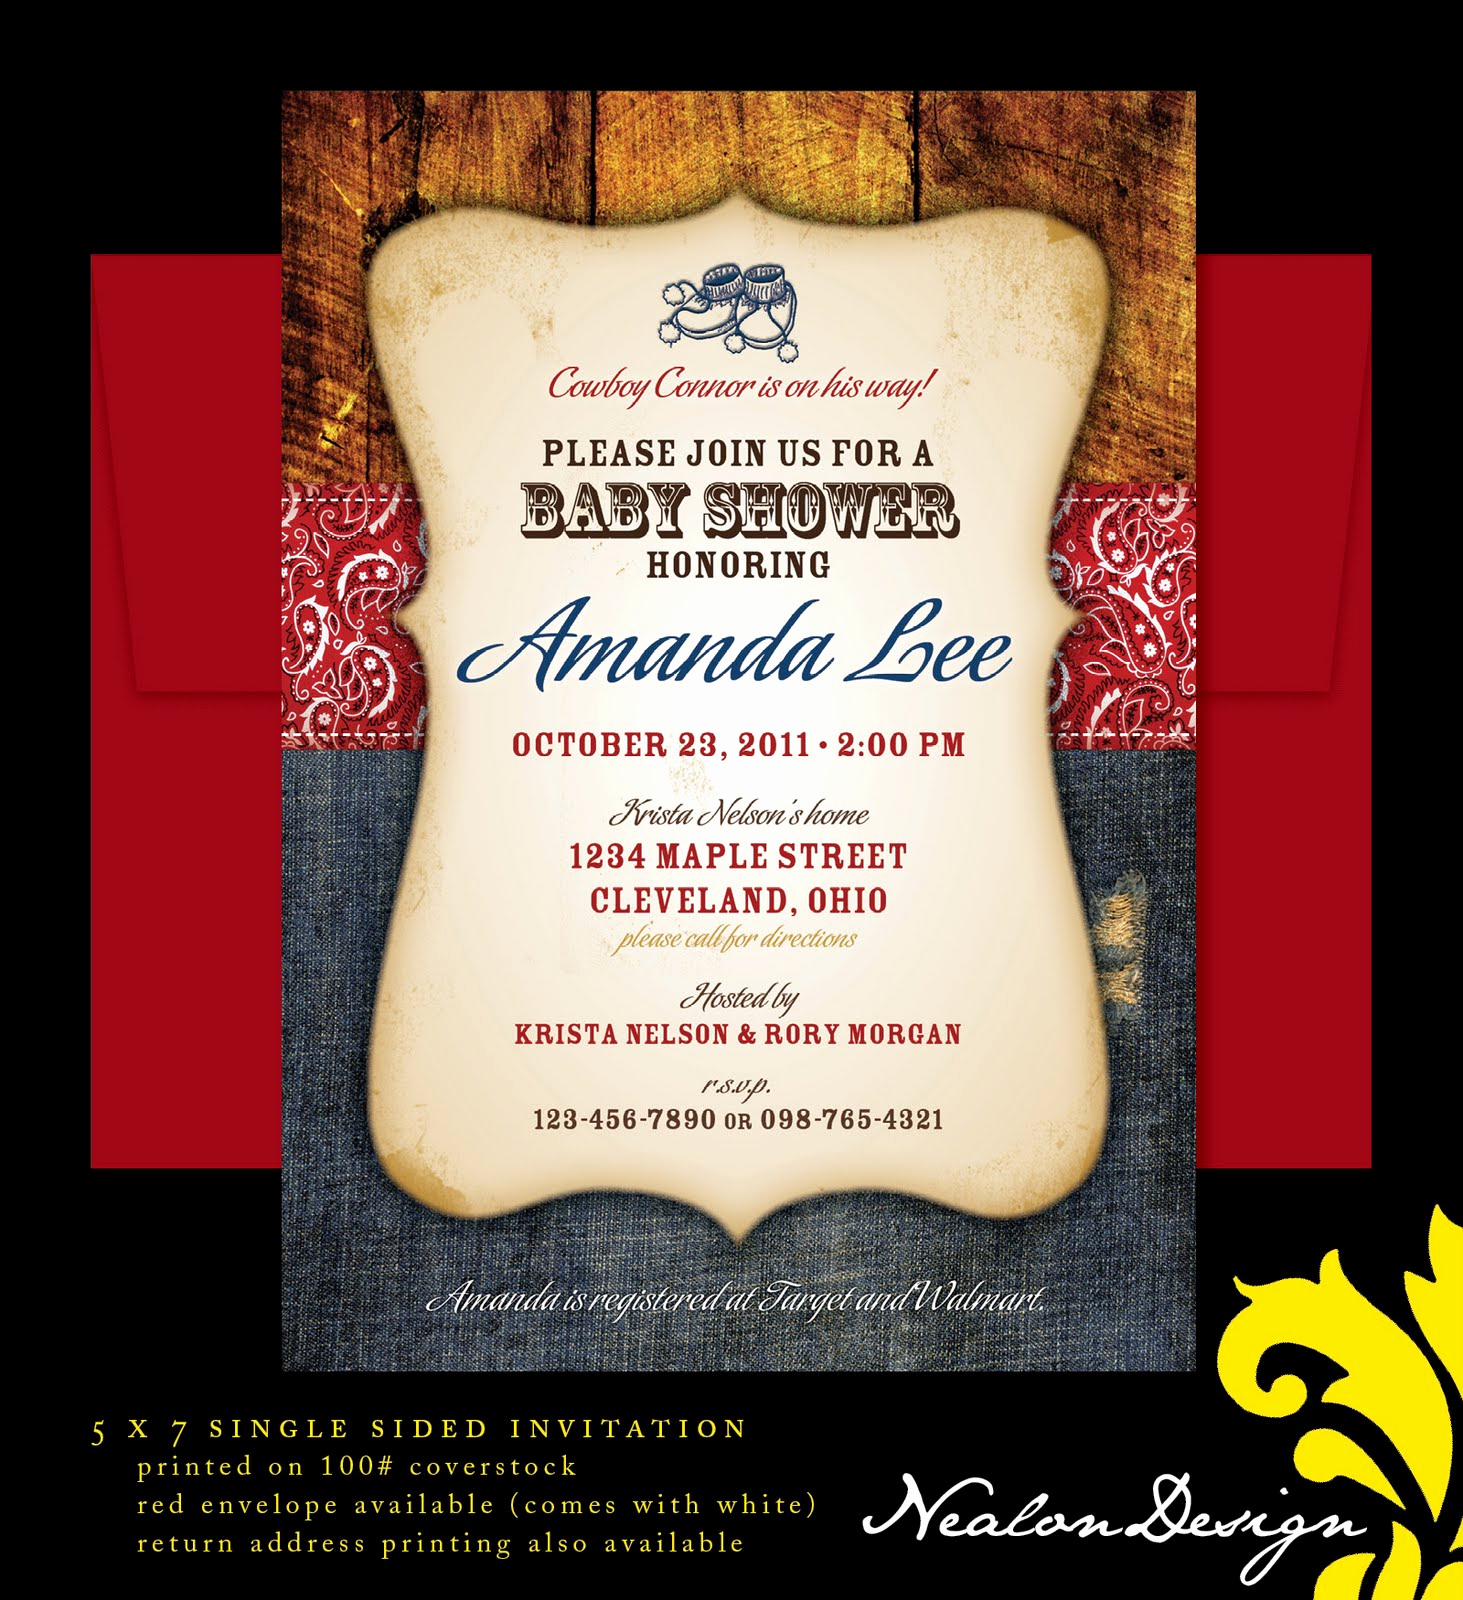 Western theme Invitation Templates Beautiful Nealon Design Western Cowboy Baby Shower Invitation